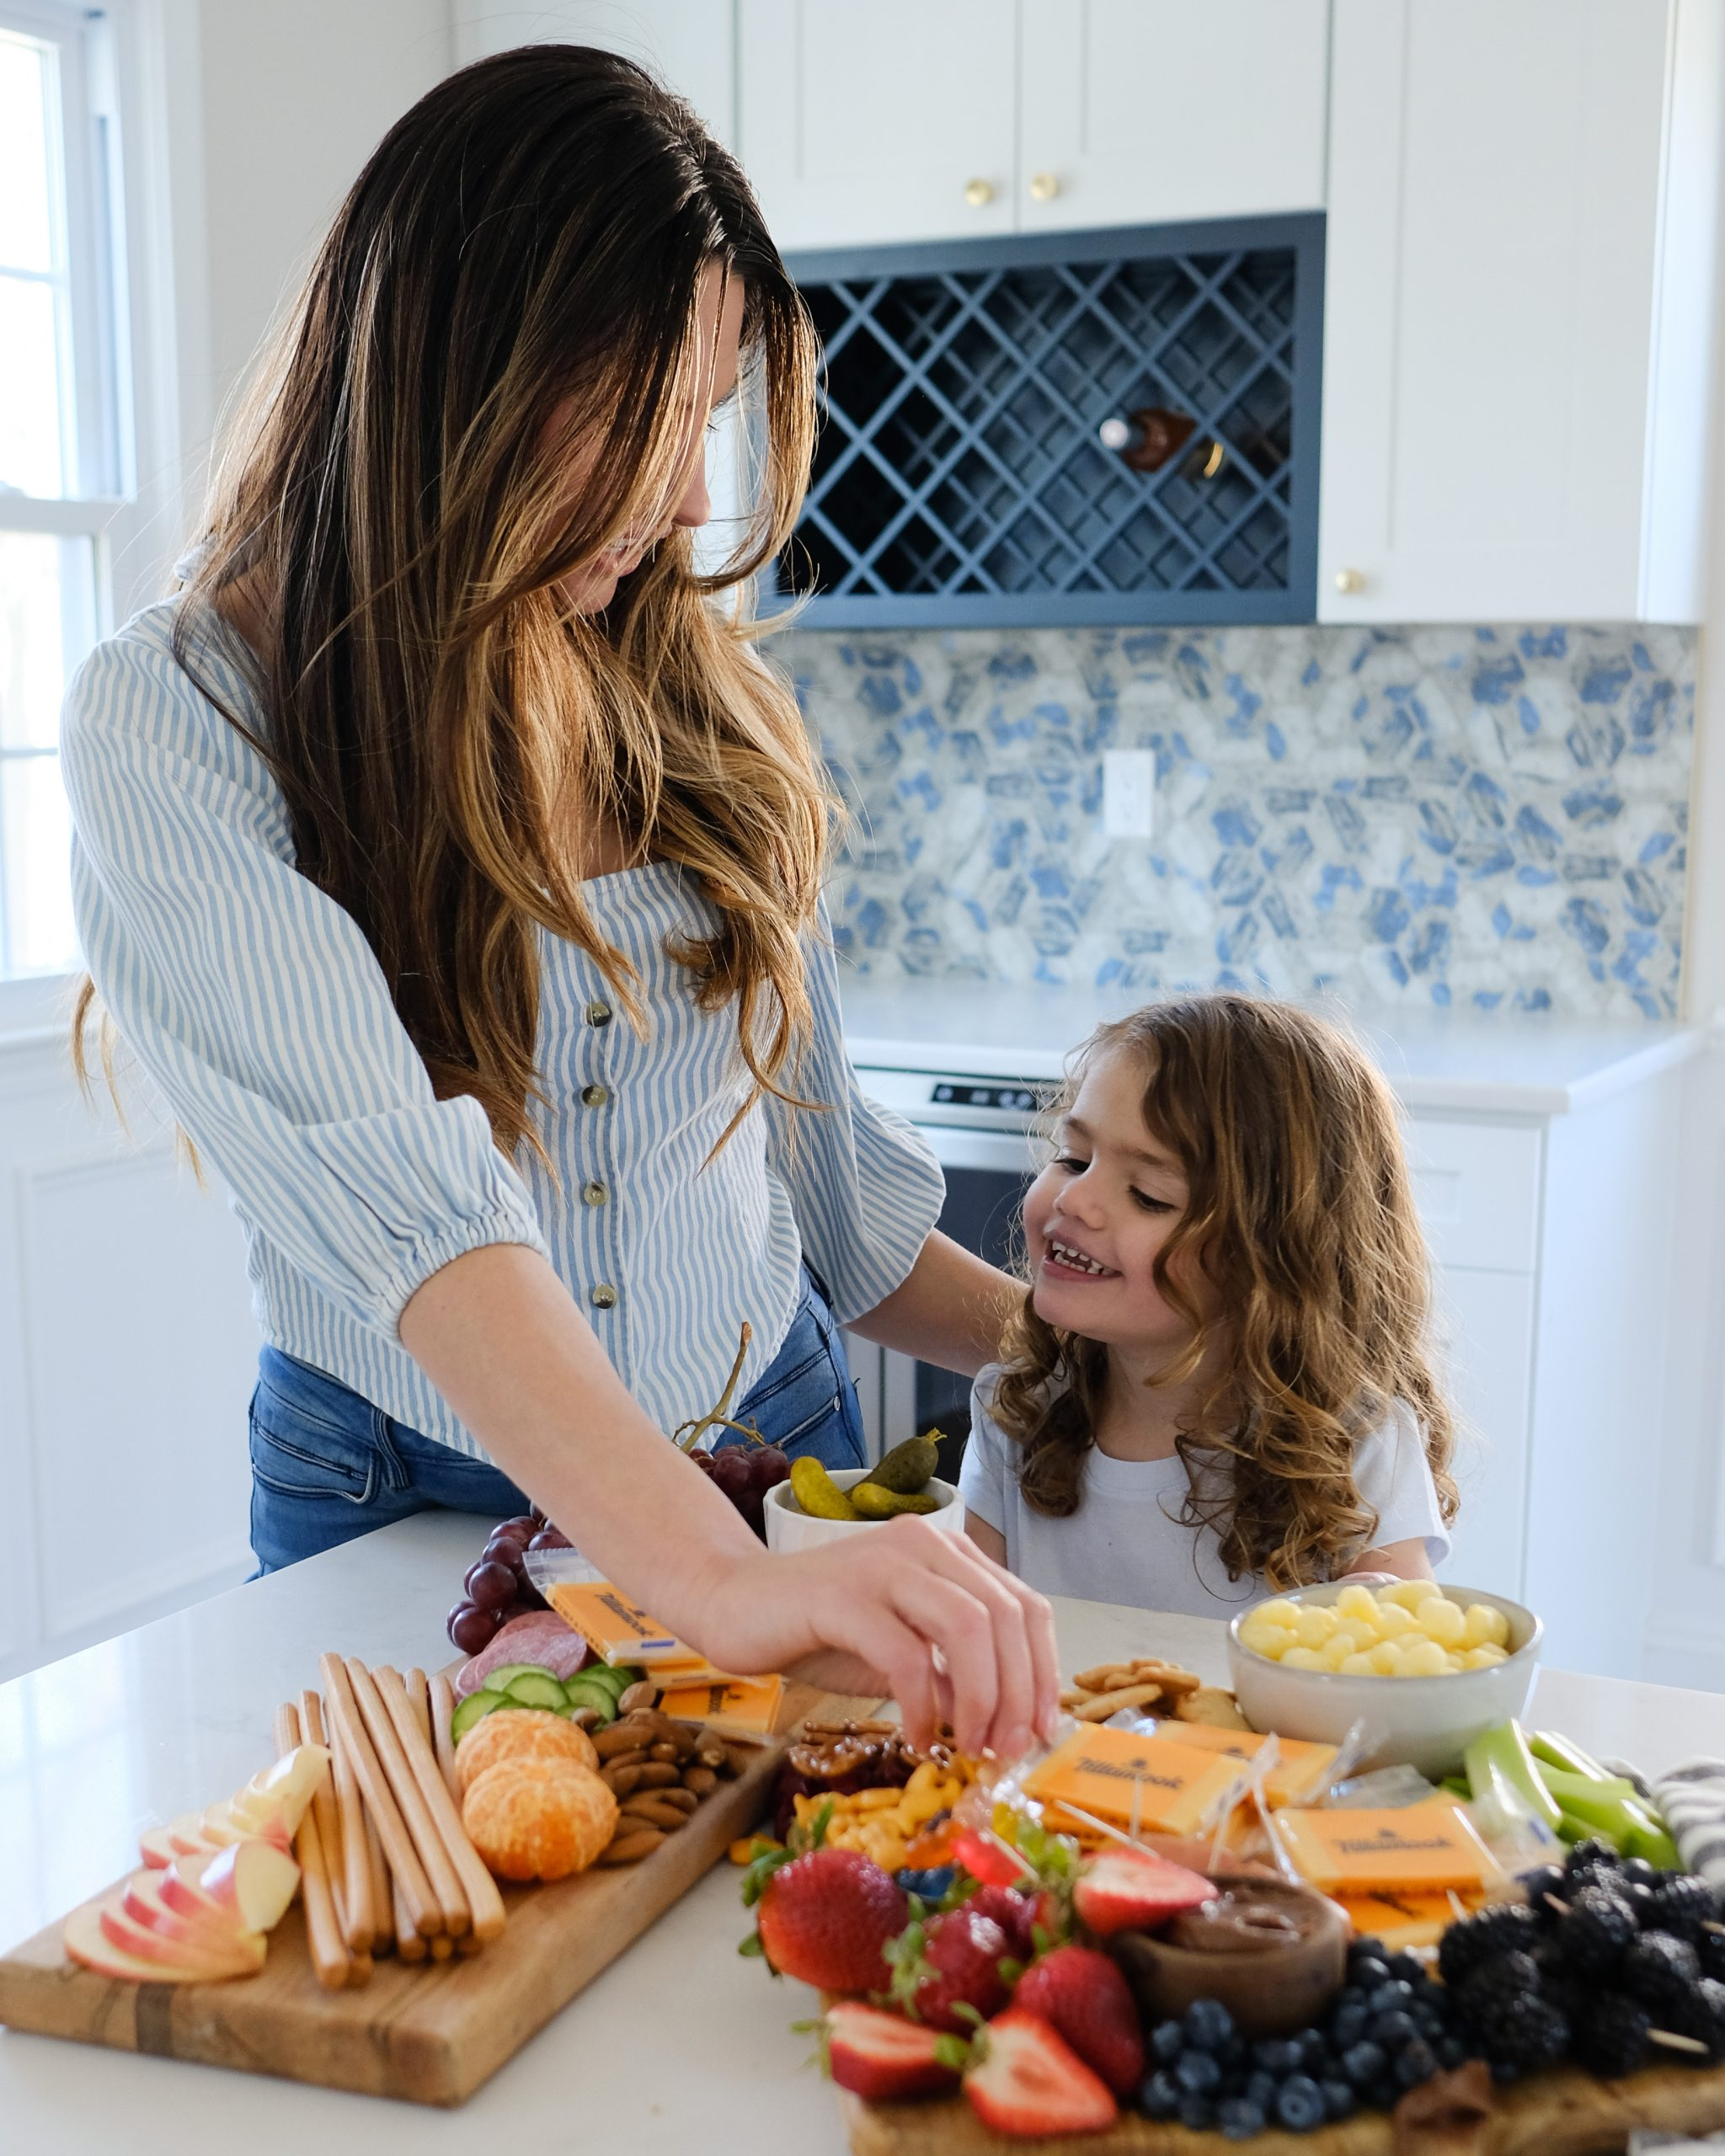 a woman and her daughter both with long brown hair eating from a snack board